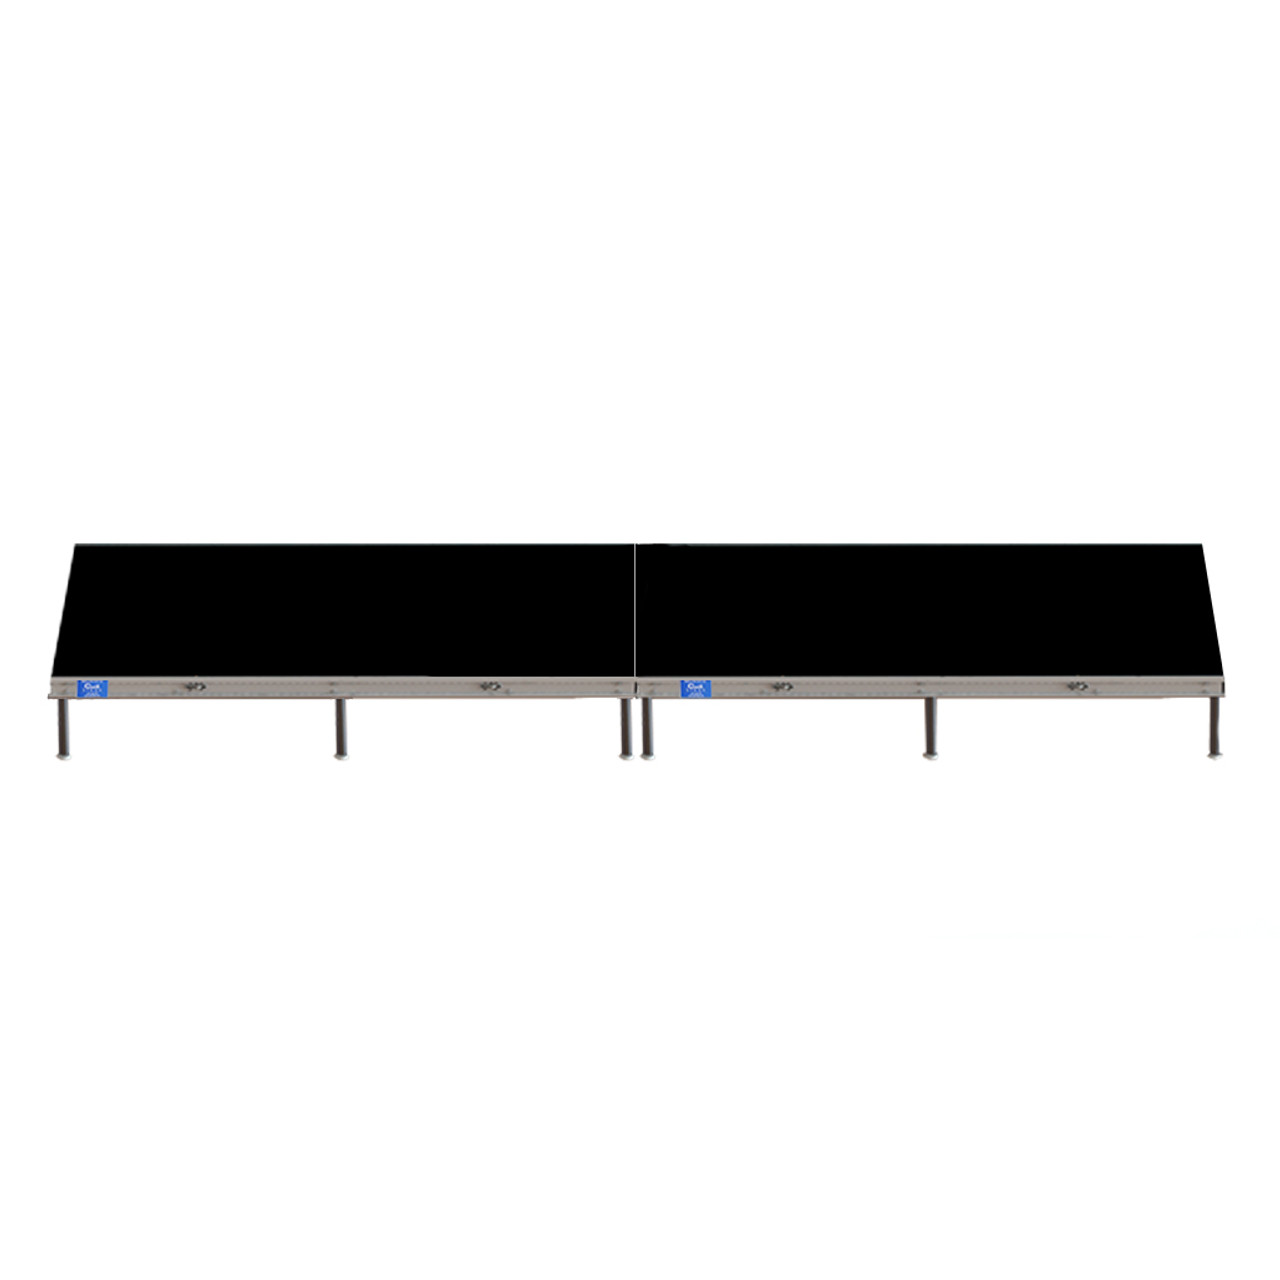 Top Rated Quik Stage 4' x 16' High Portable Stage Package with Black Polyvinyl Non-Skid Surface. Additional Heights and Surfaces Available - Front view